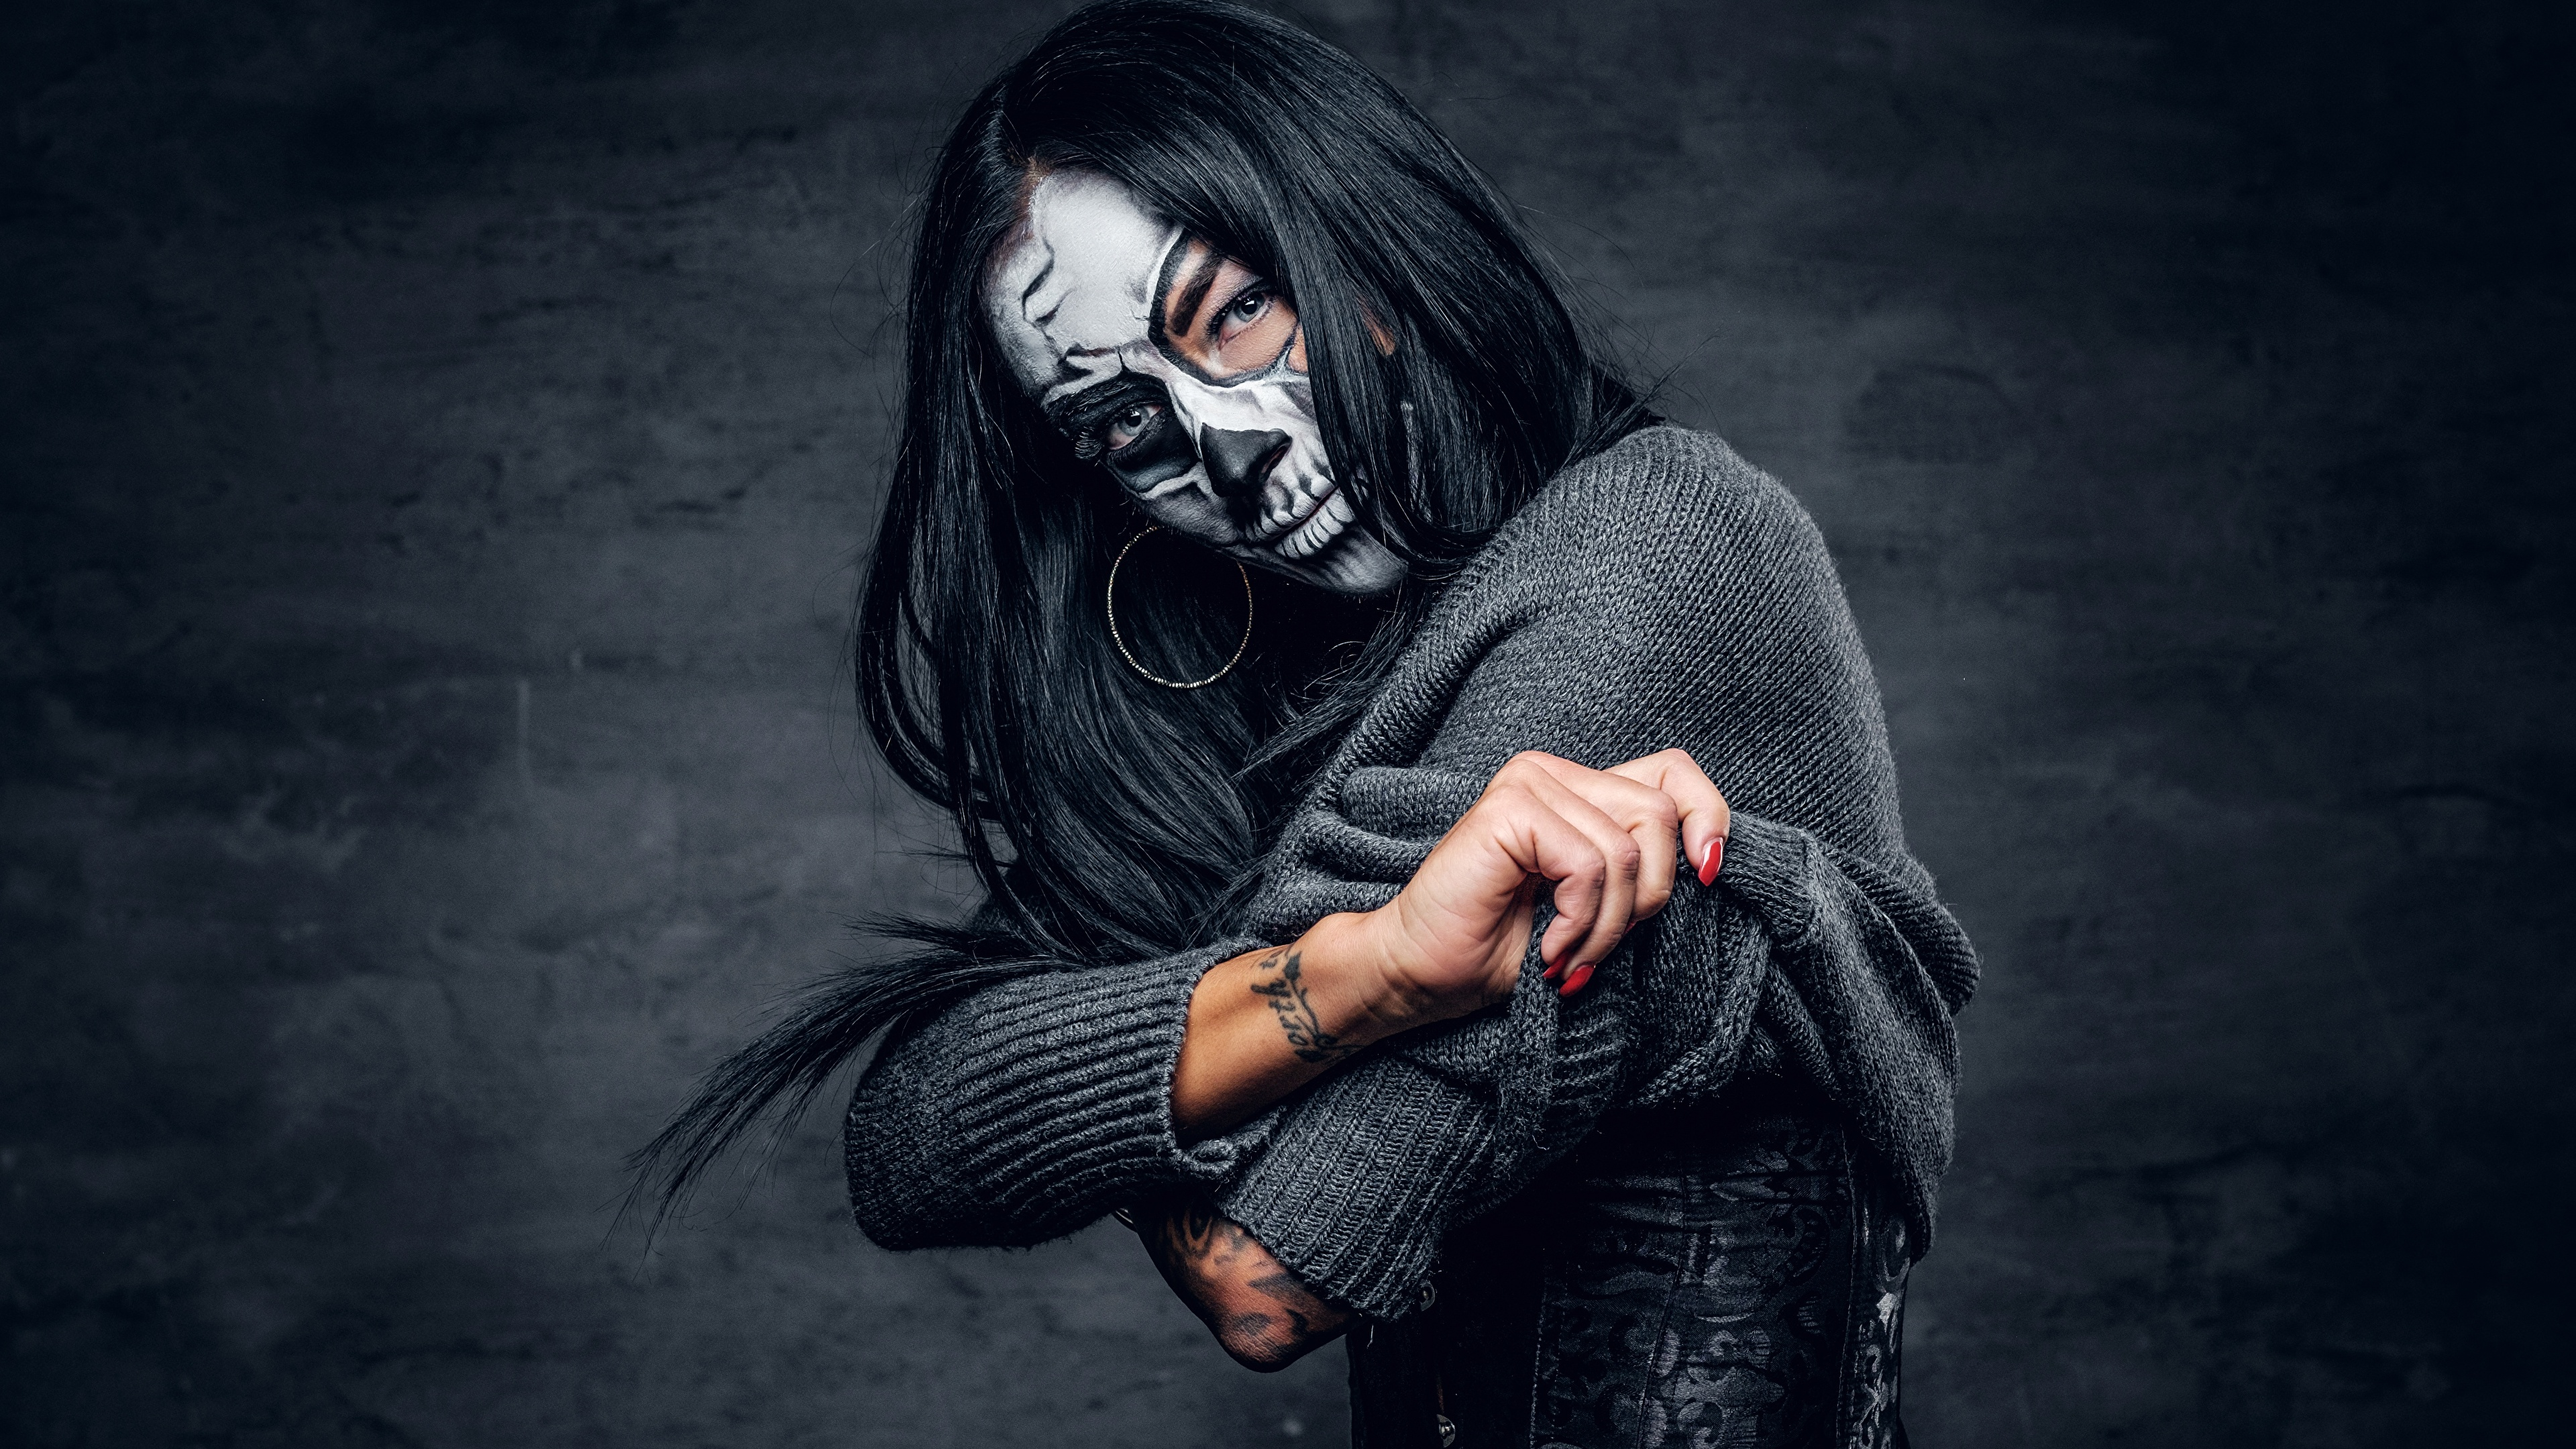 Pictures Brunette Girl Makeup Day Of The Dead Female 3840x2160